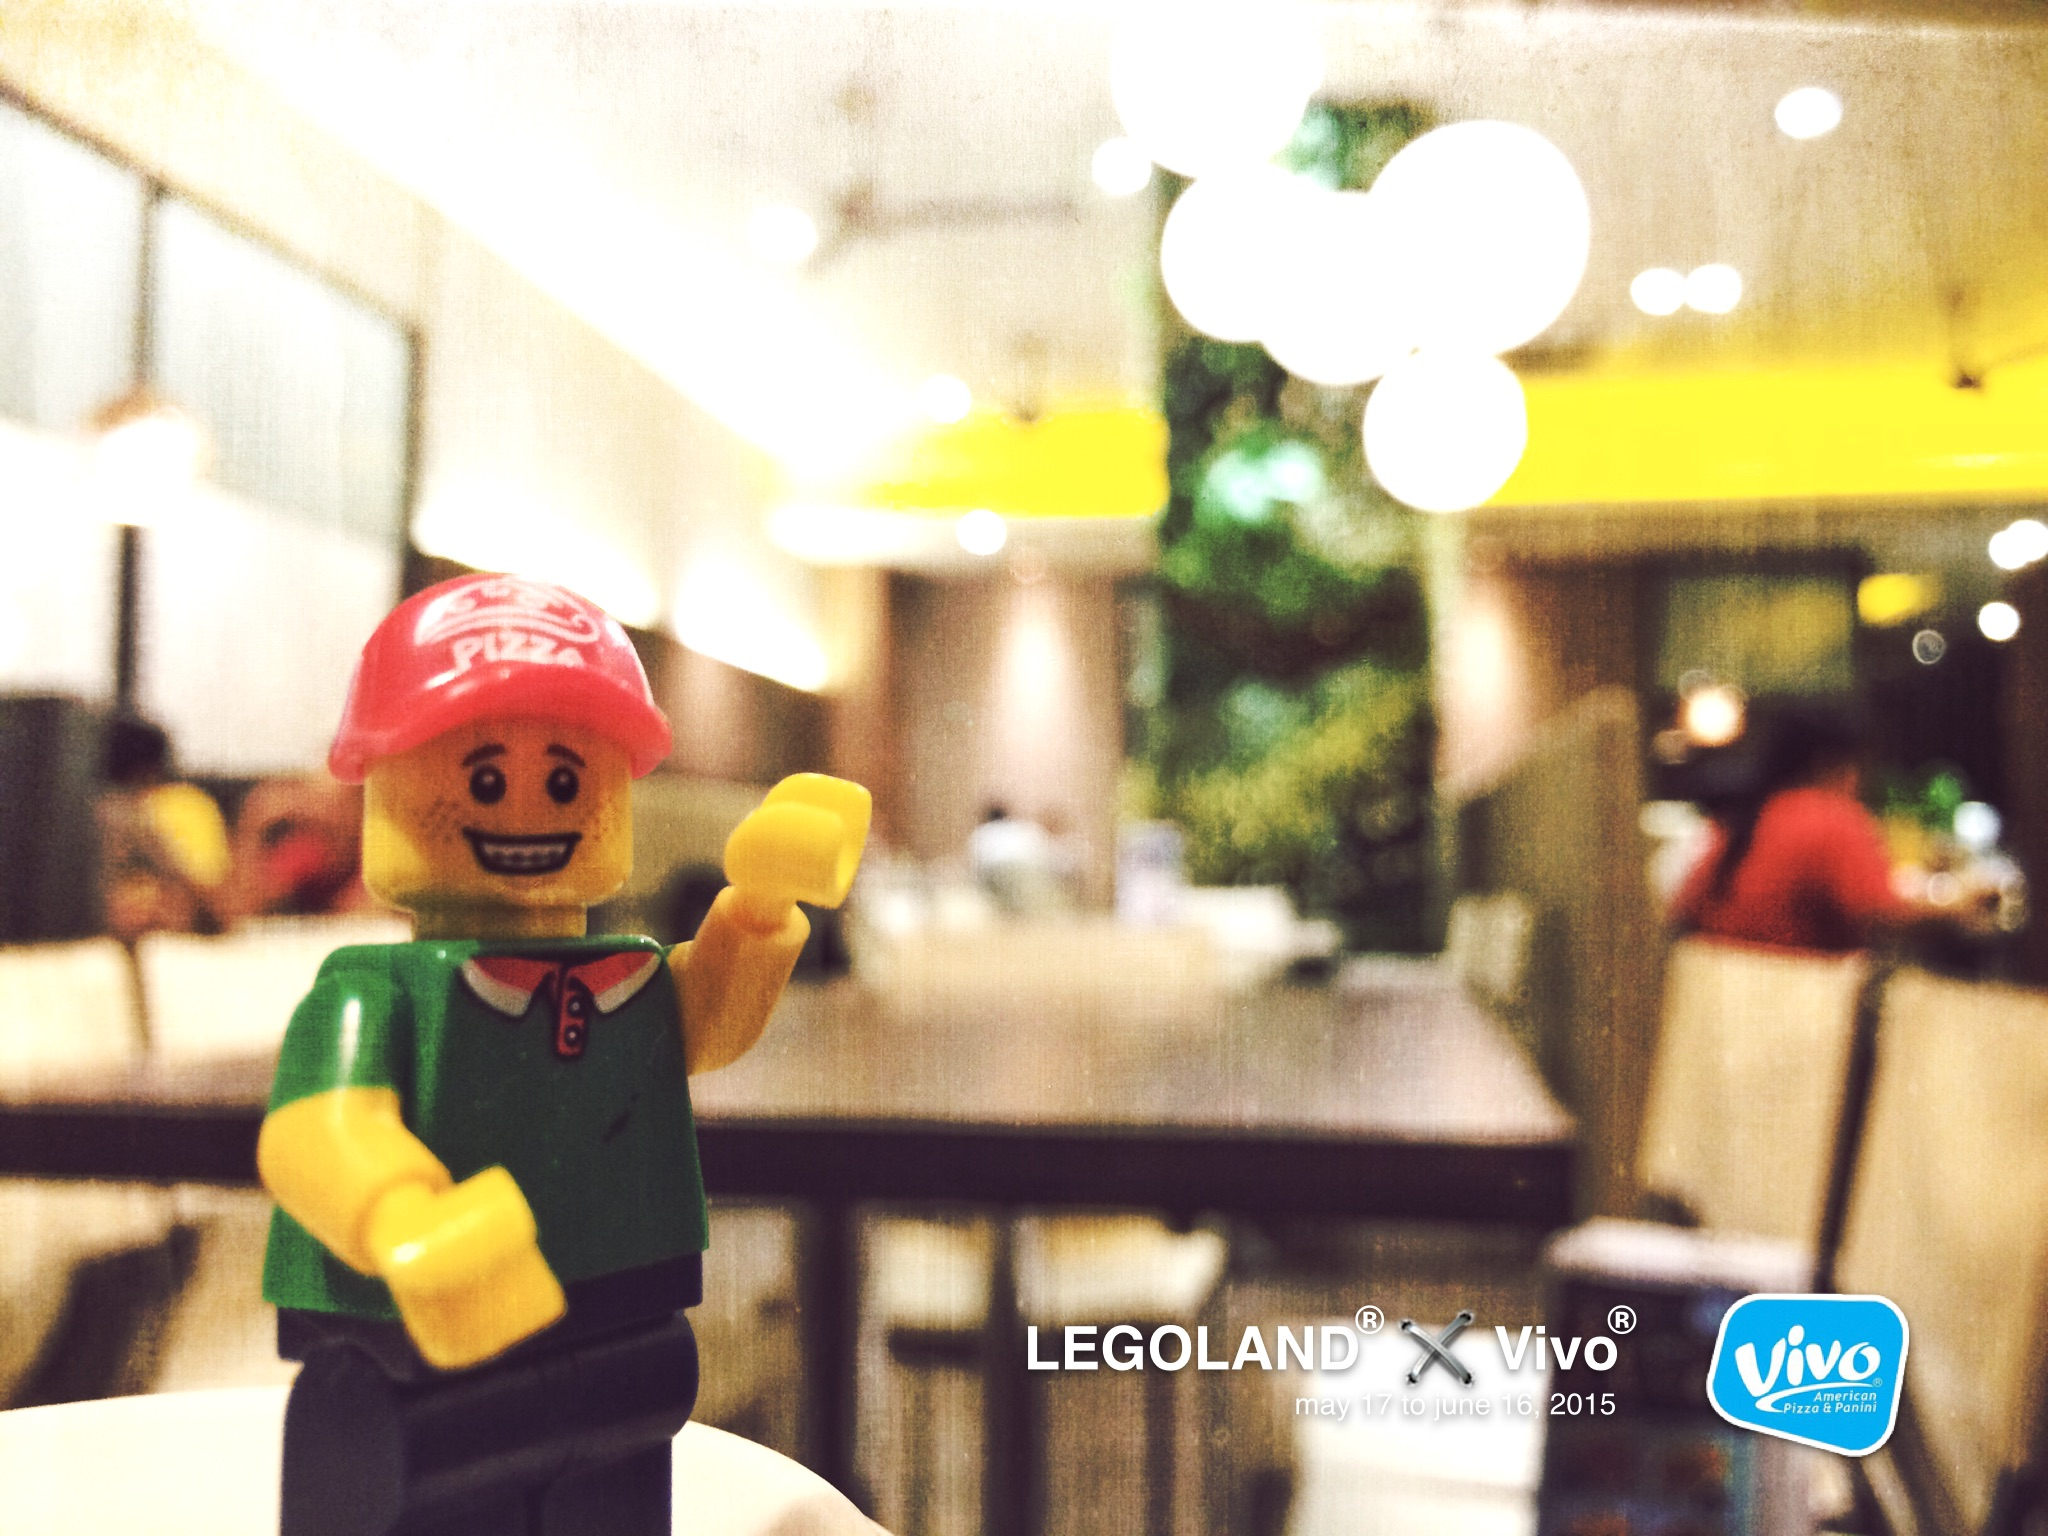 LEGOLAND x Vivo Collaboration